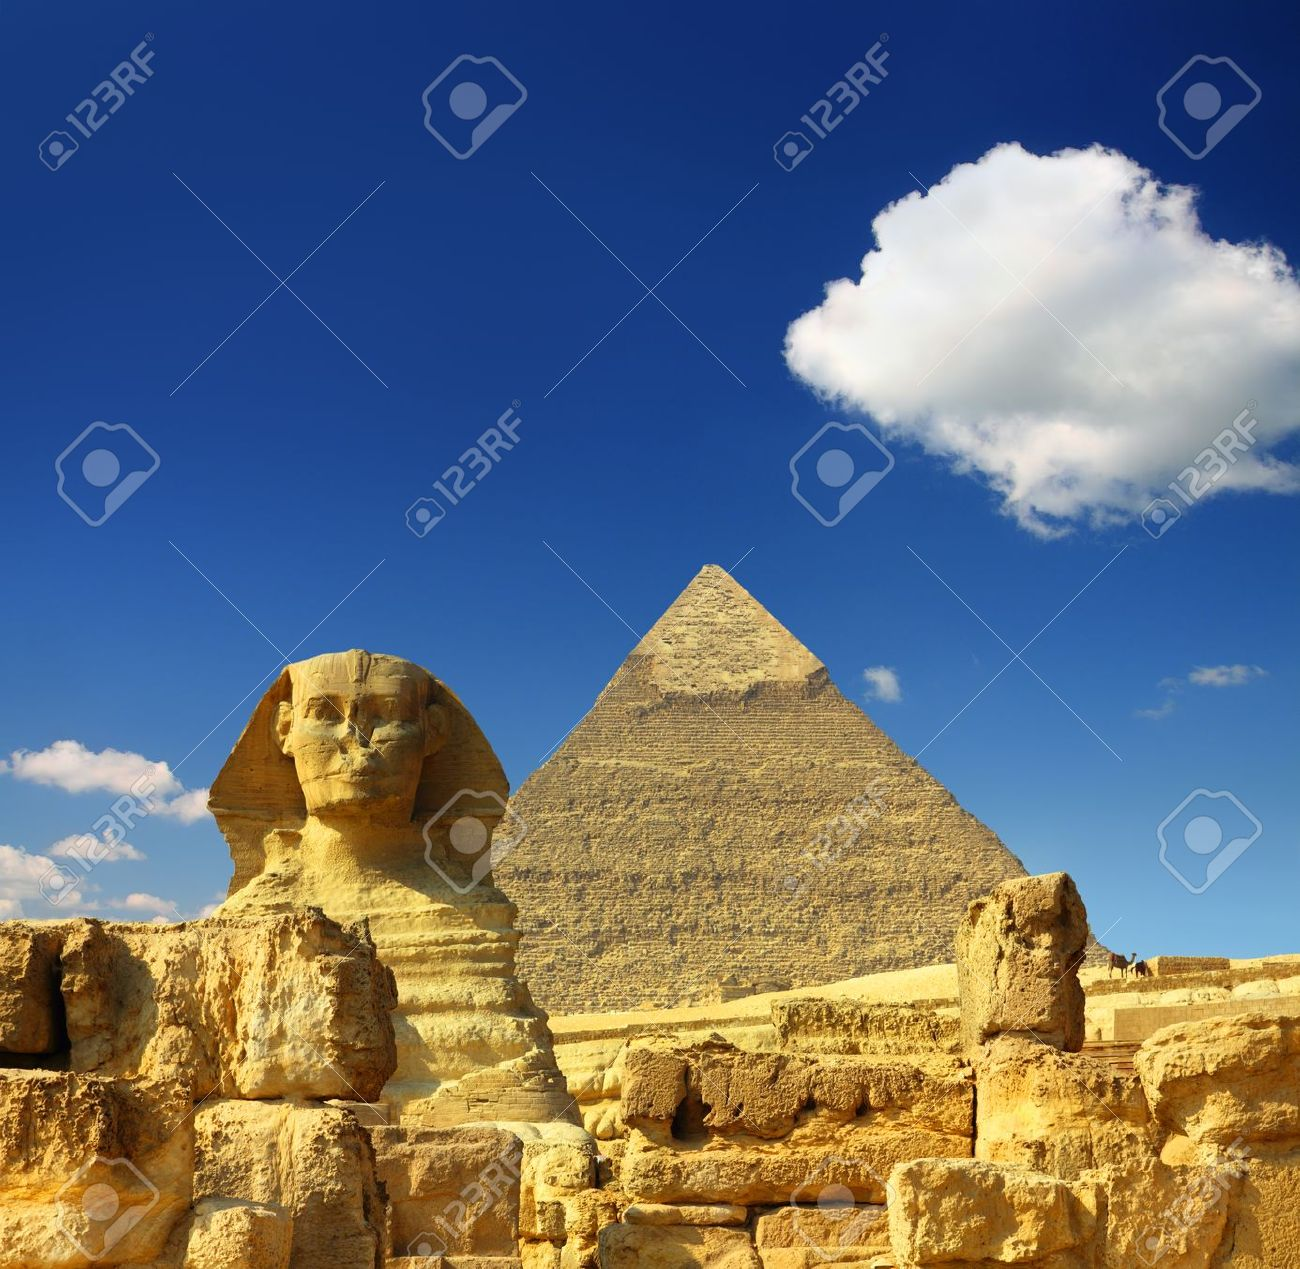 famous ancient egypt Cheops pyramid and sphinx in Giza - 9519355